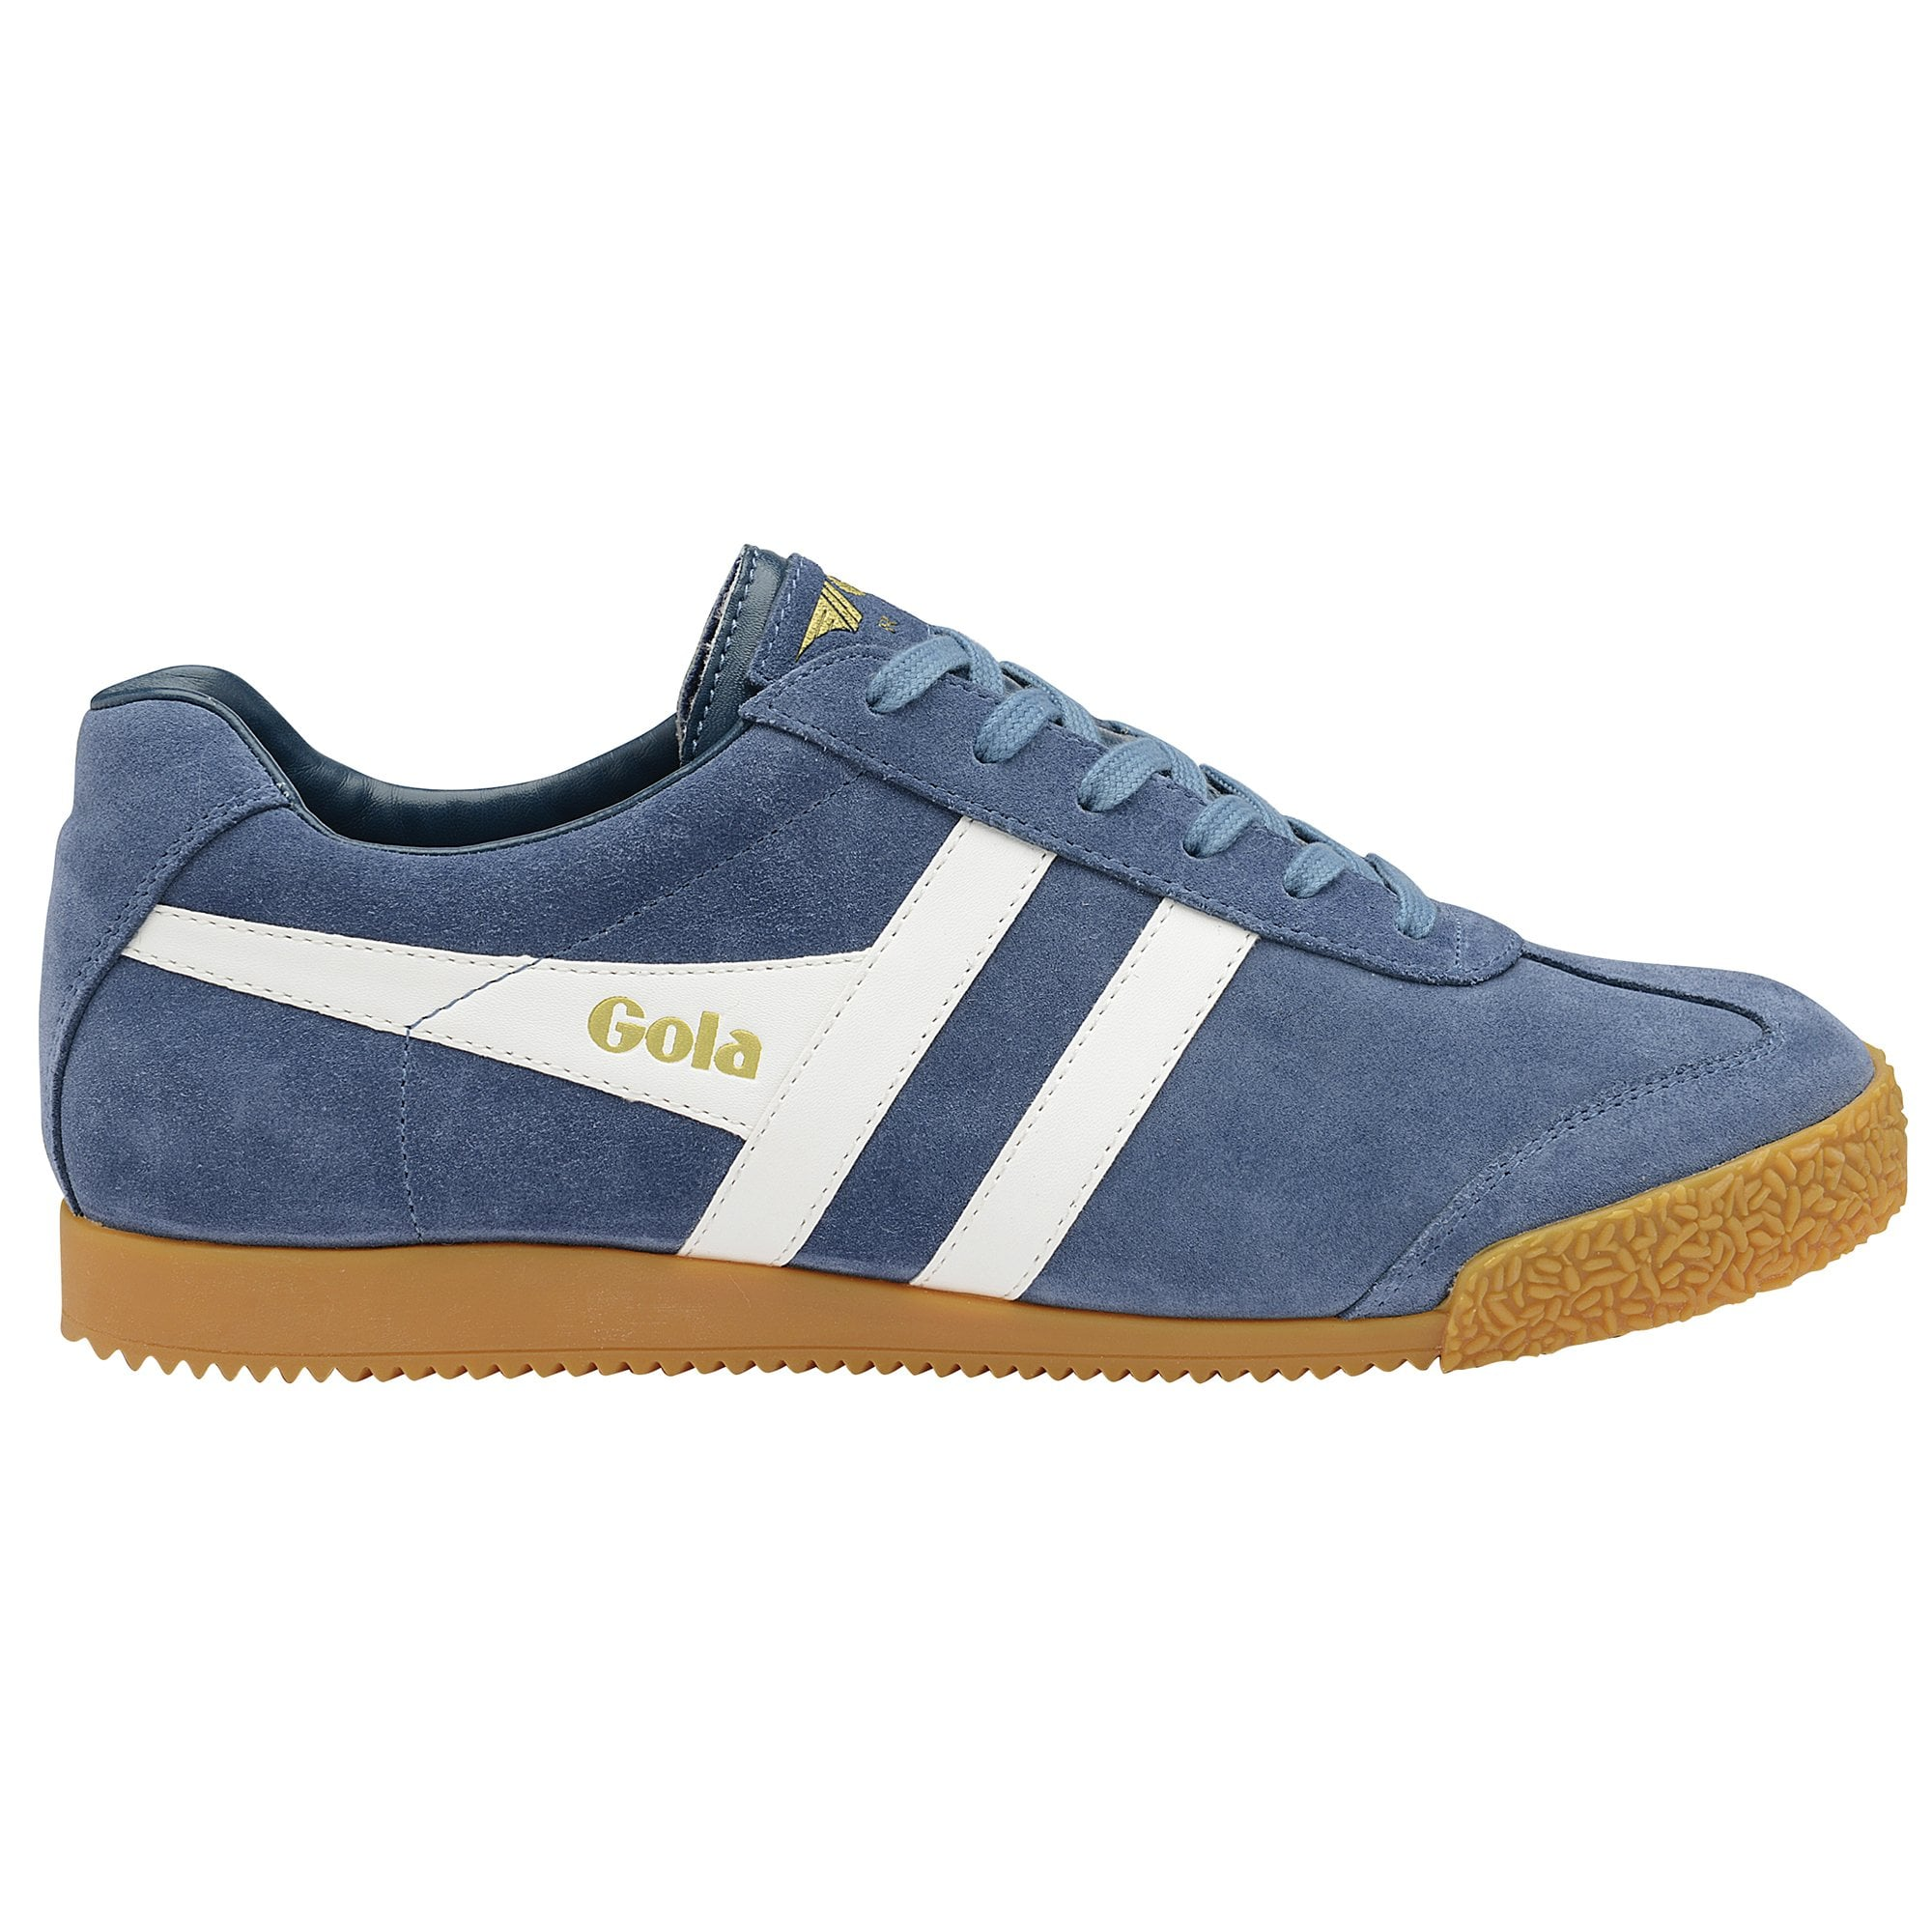 Gola Classics Harrier Mens Suede Trainers In Beige Size UK 6-12